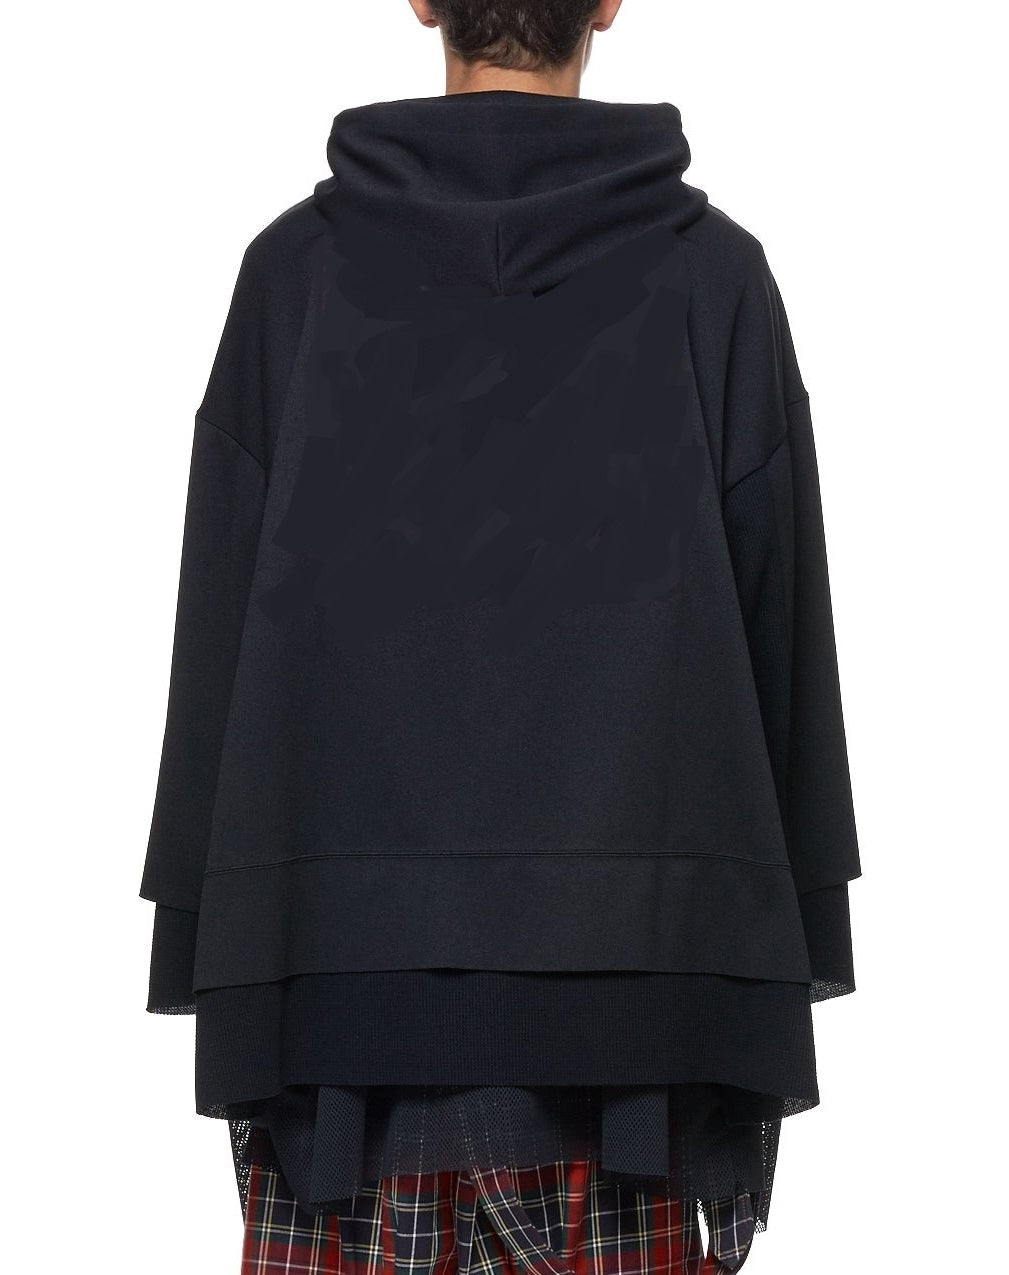 Mesh Hoodie Sweater in Black / Adjustable Hood Layer Over Mesh Triple